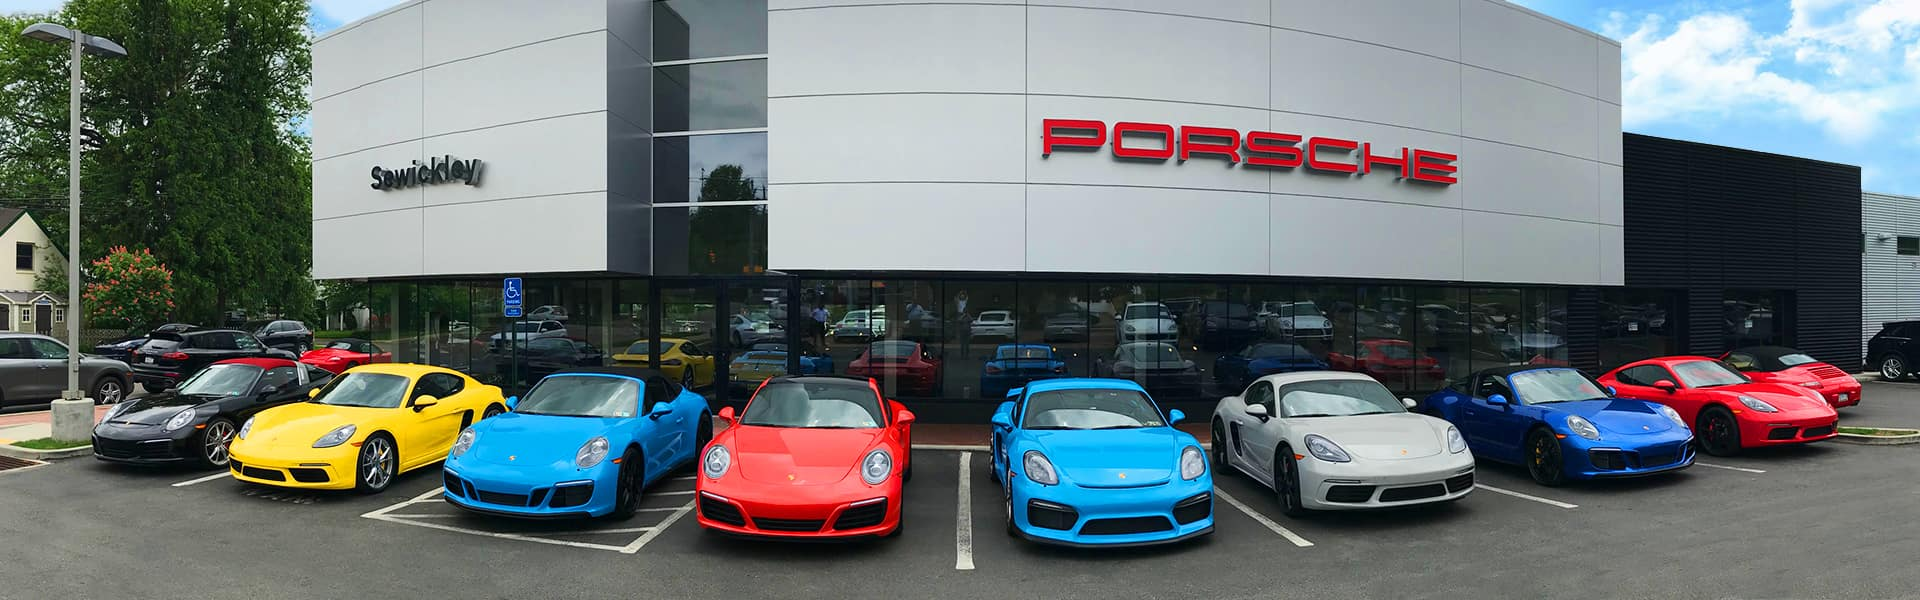 Sewickley Porsche PA